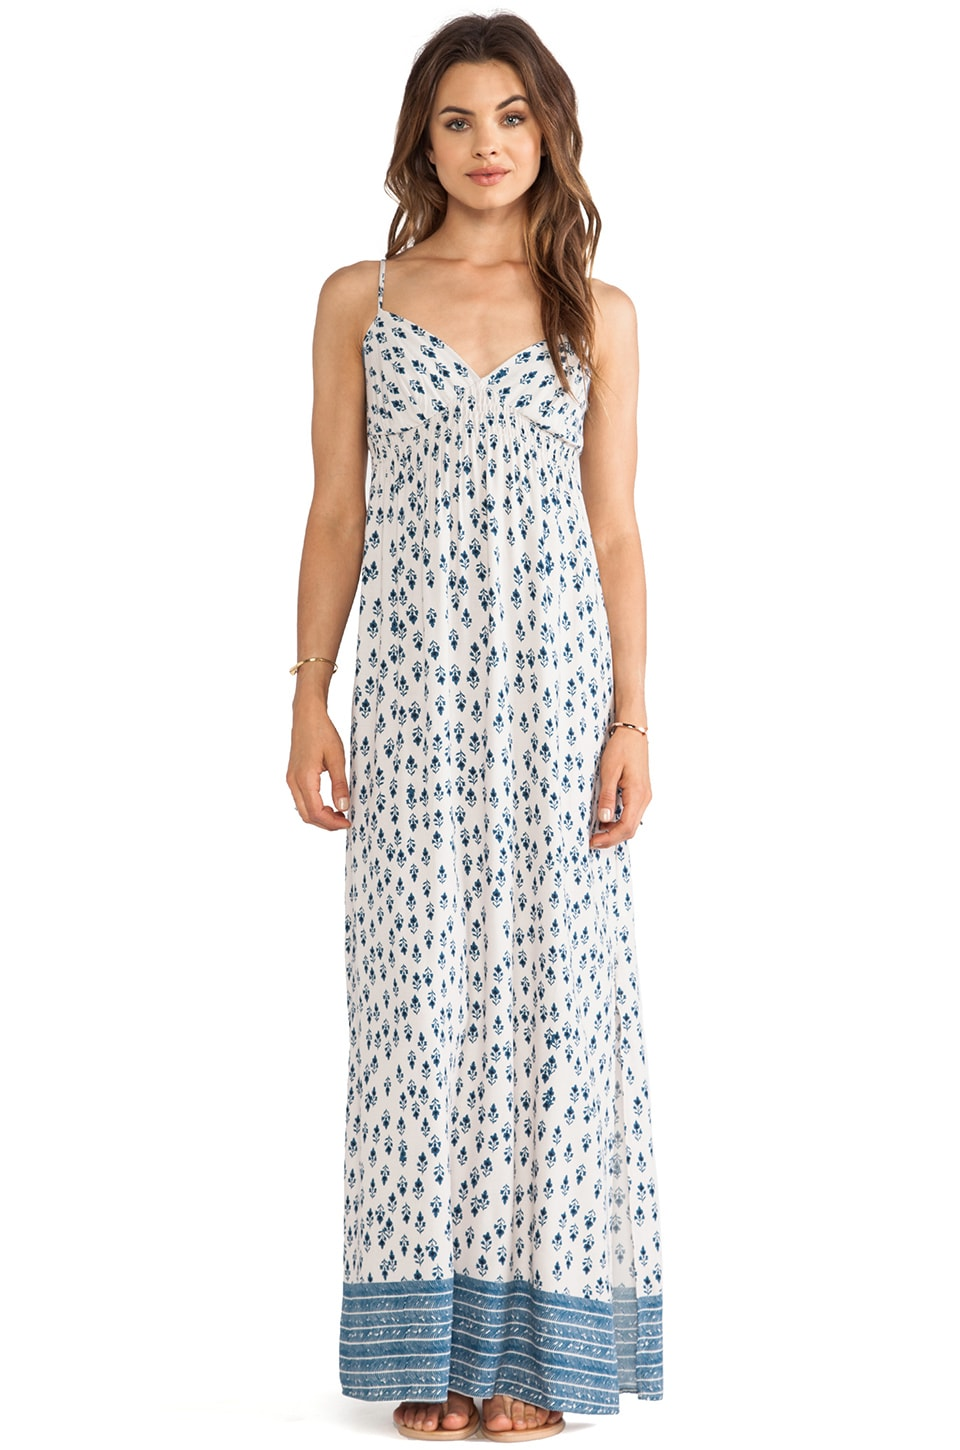 Eight Sixty Sonoma Valley Maxi Dress in Sand & Denim